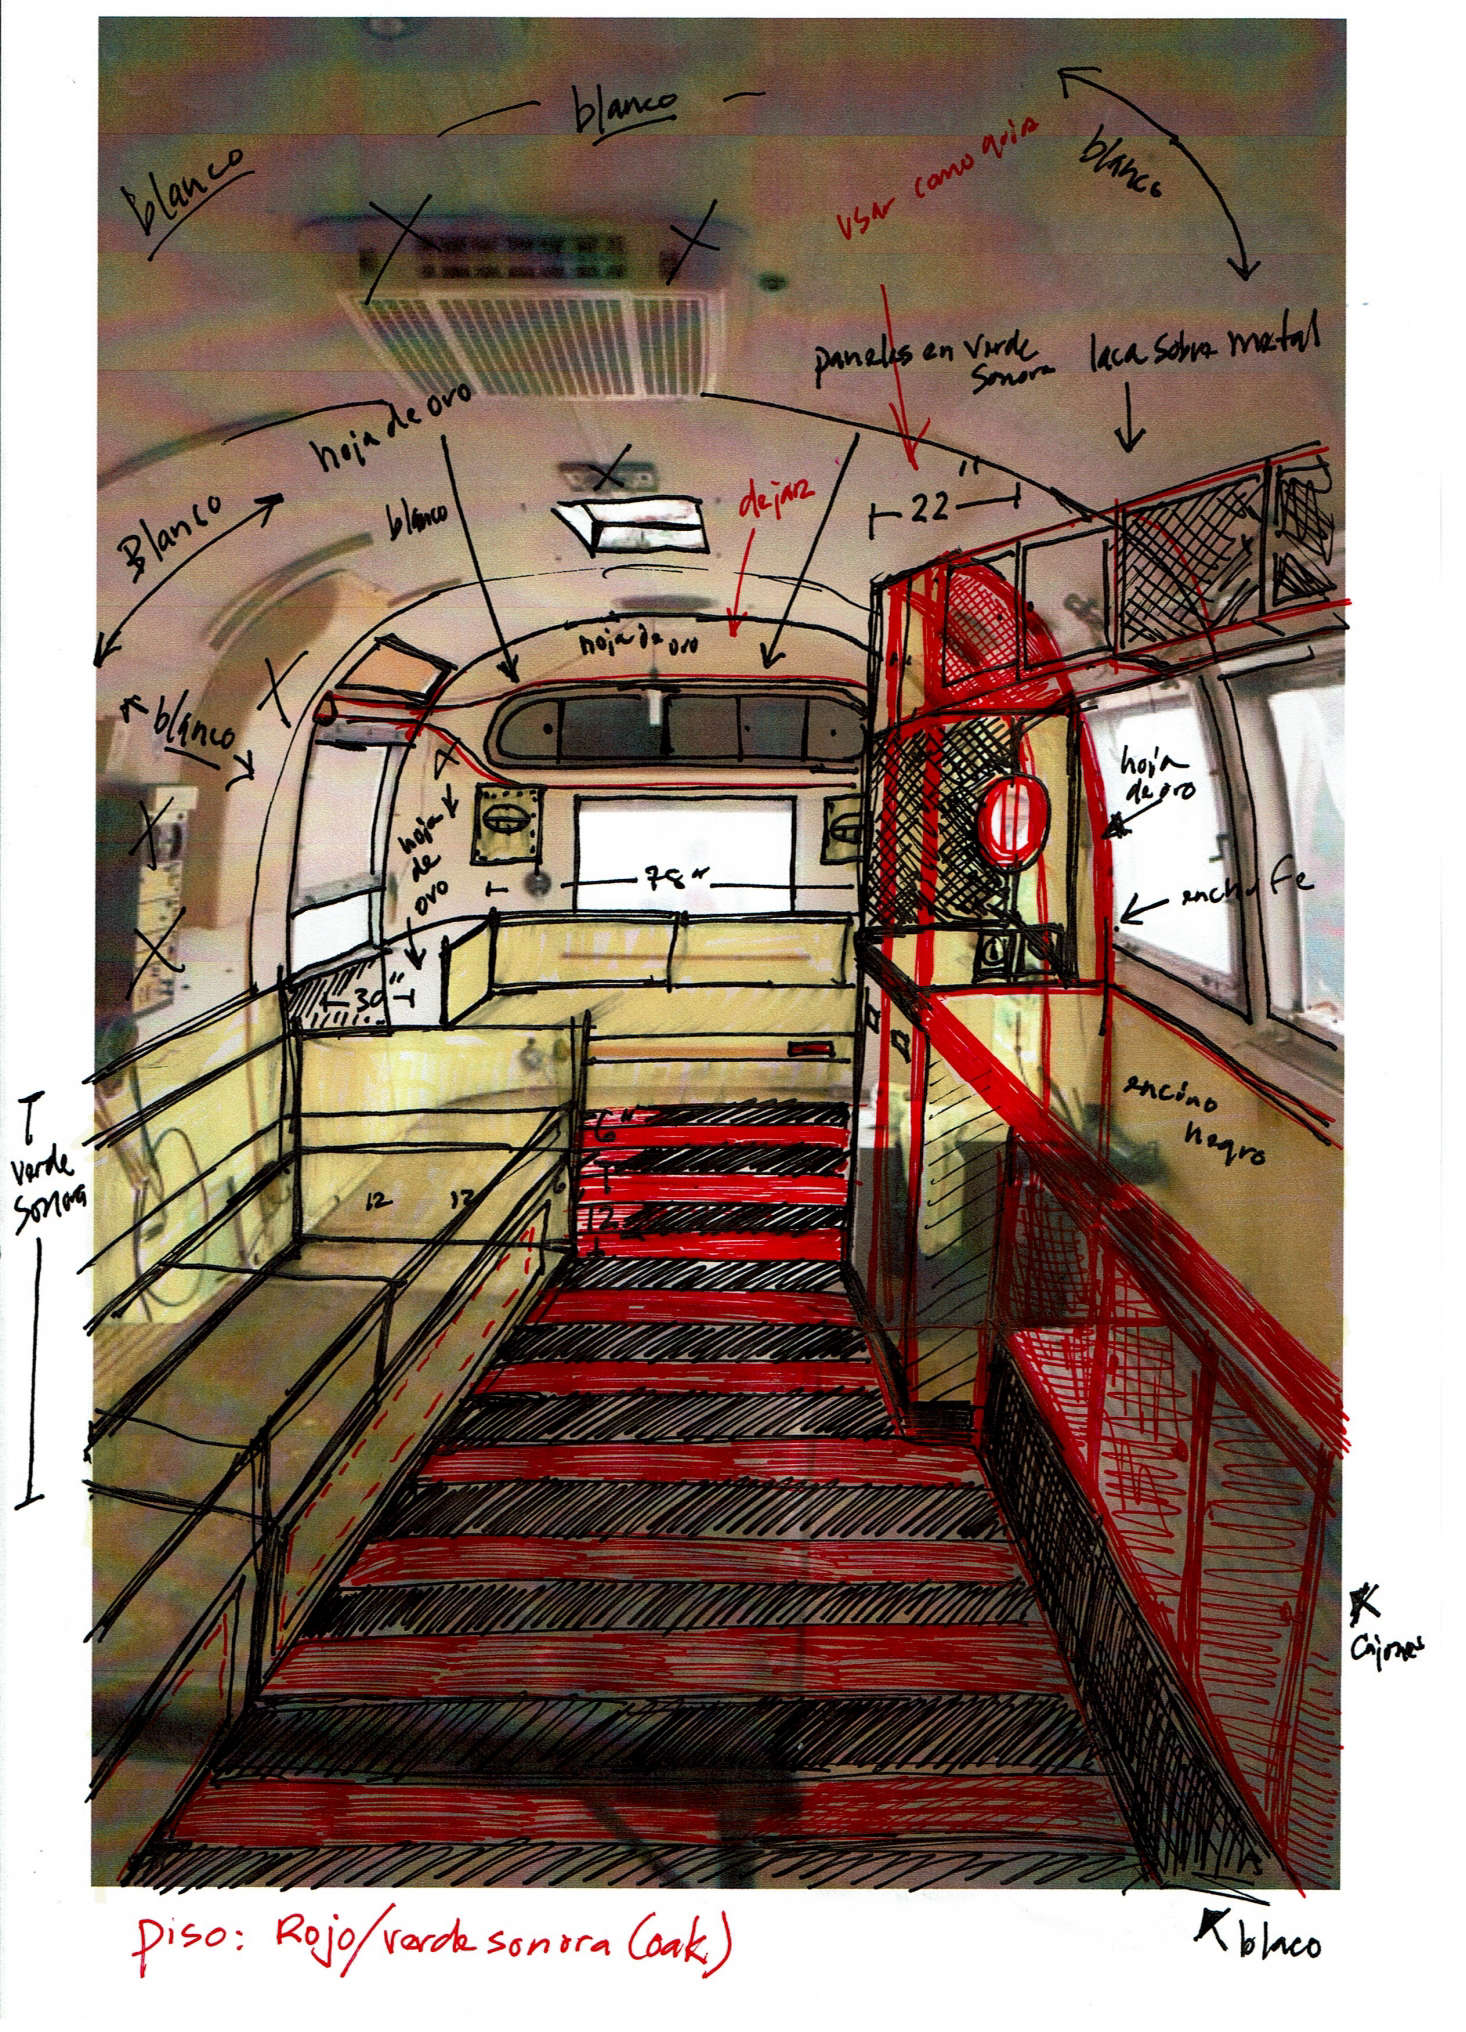 Jorge sketched his makeover ideas on a photo of the existing interior.